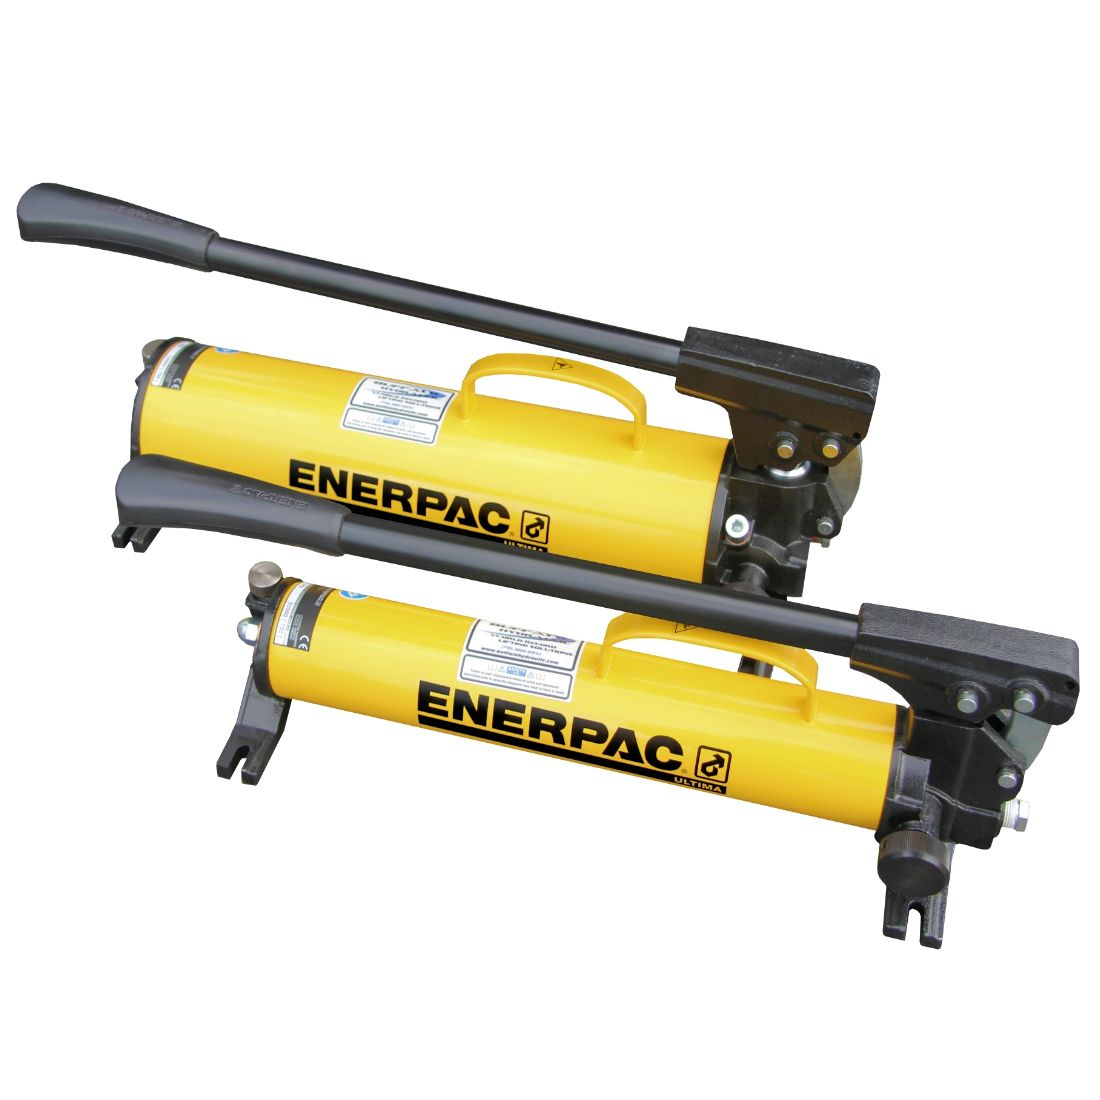 enerpac hand pumps enerpac p 39 p 80 buffalo hydraulic. Black Bedroom Furniture Sets. Home Design Ideas